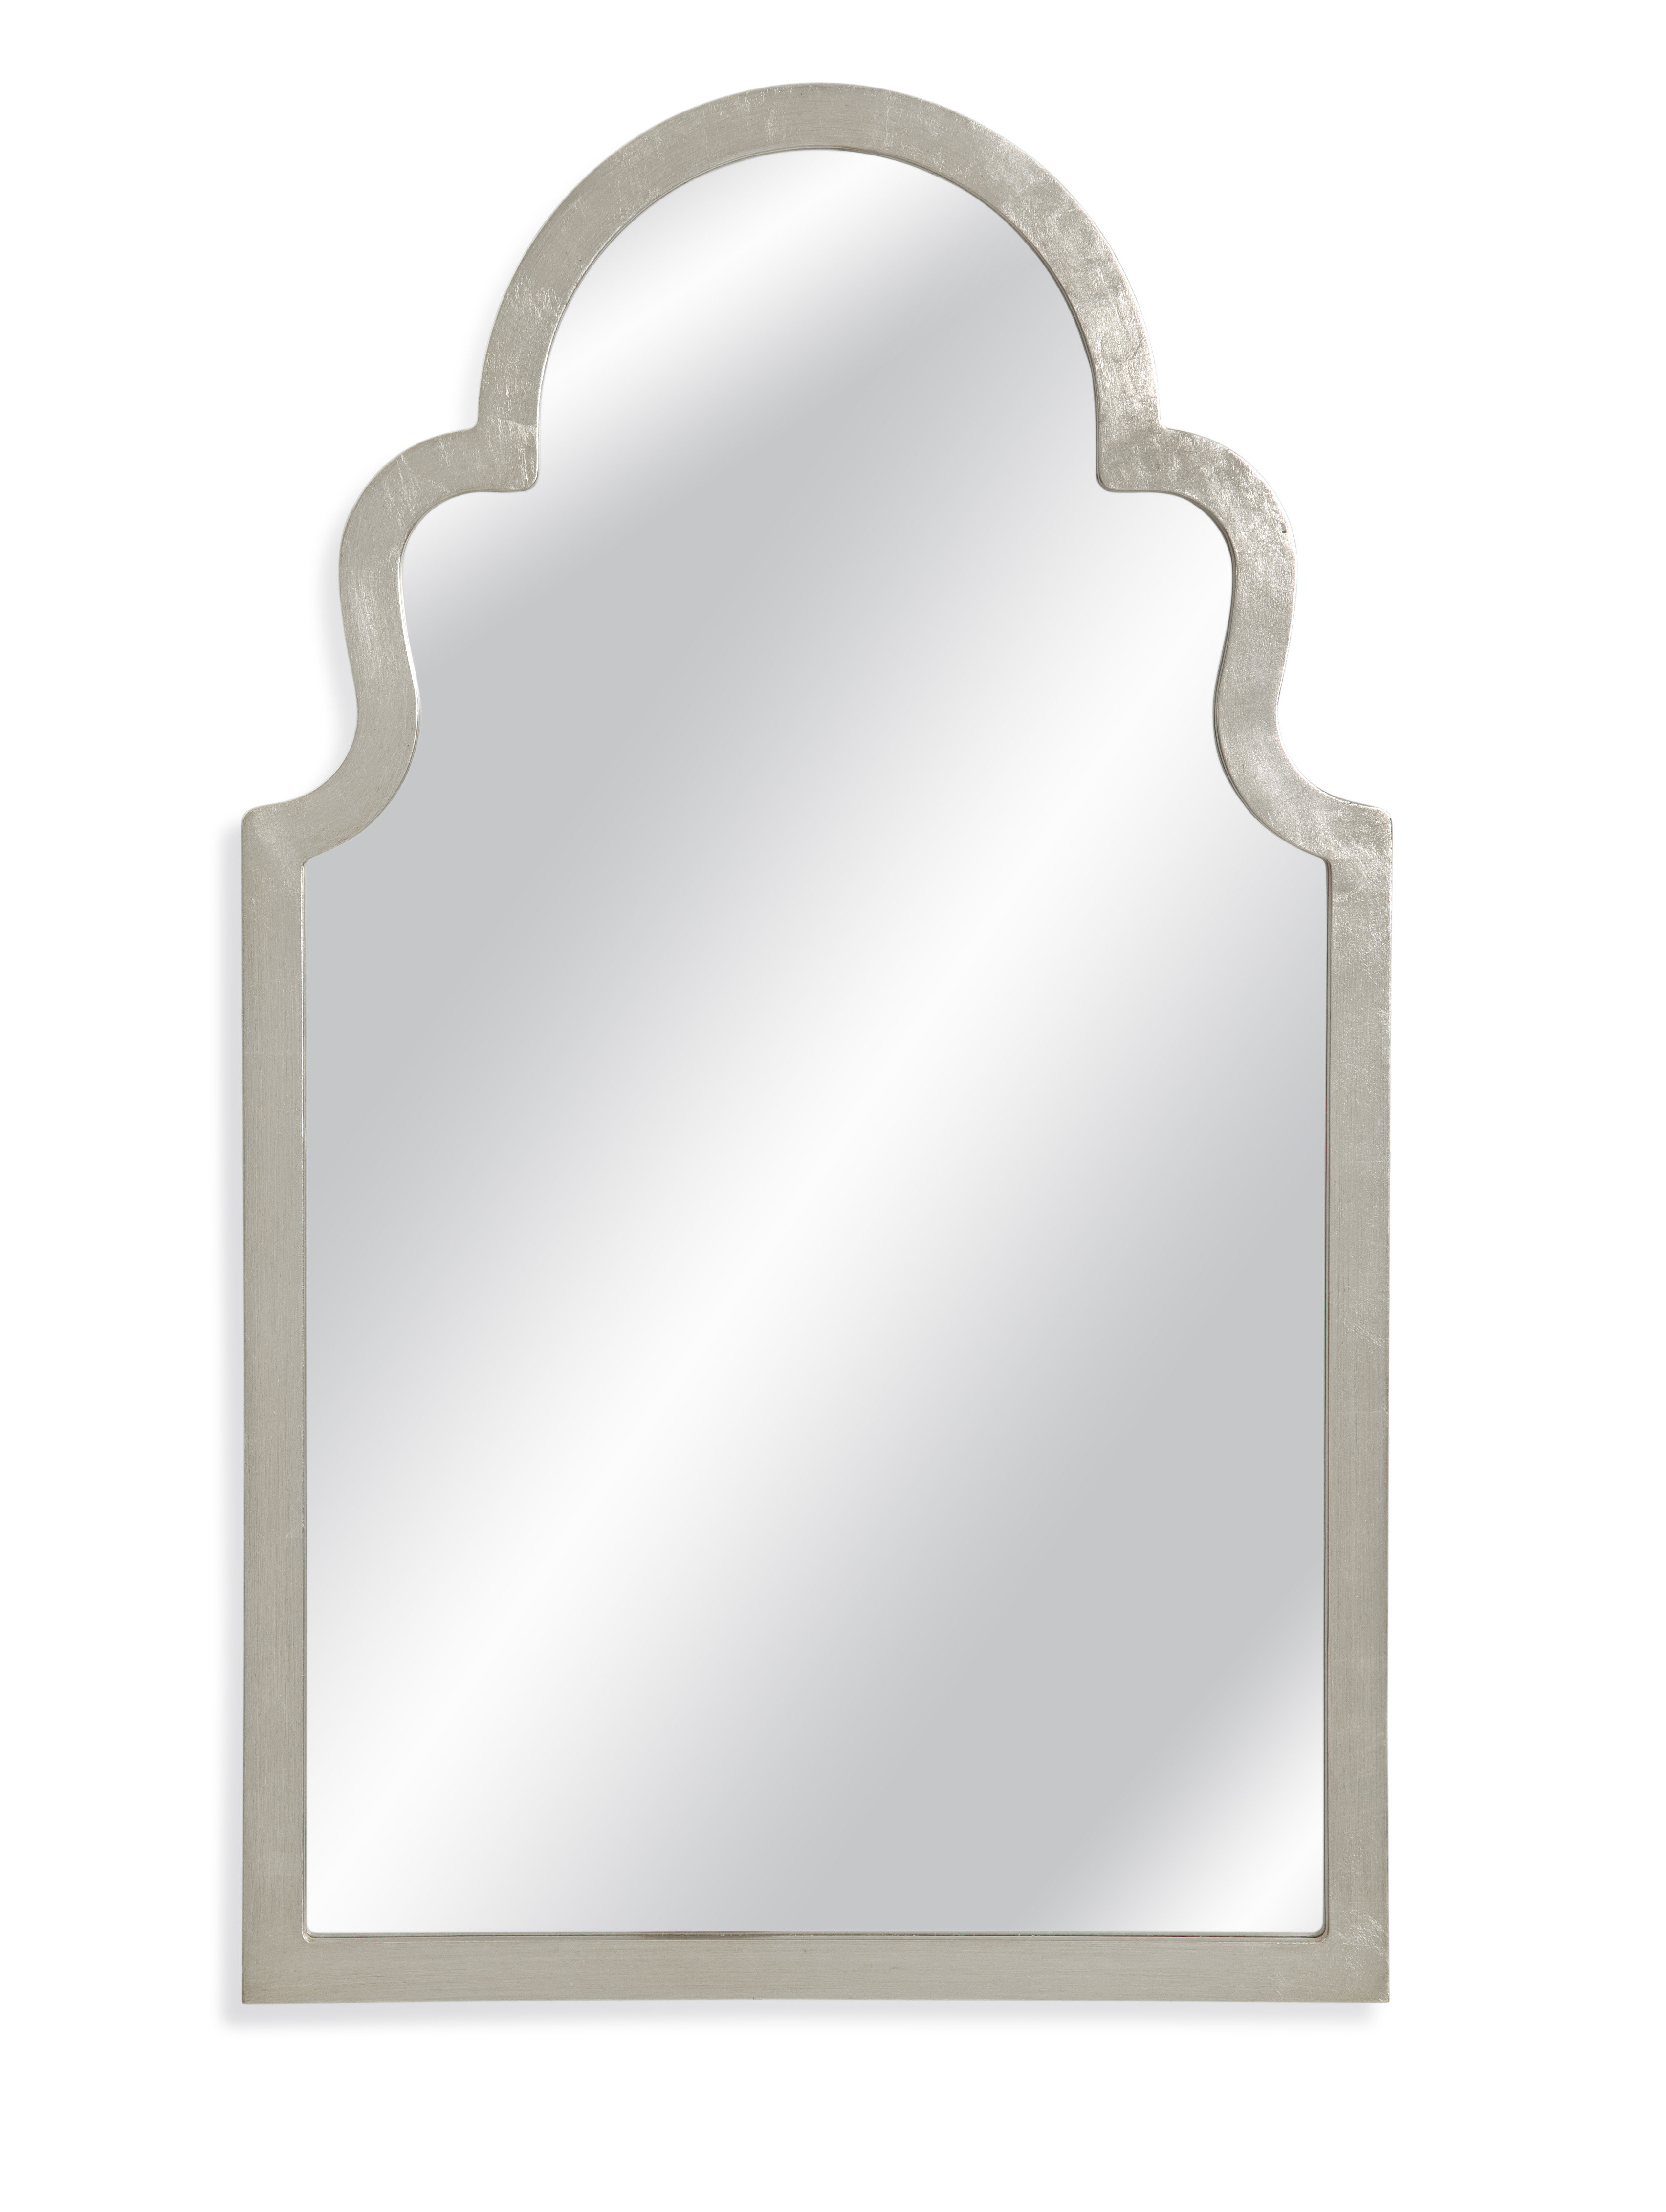 Arch Top Vertical Wall Mirror intended for Arch Vertical Wall Mirrors (Image 8 of 30)